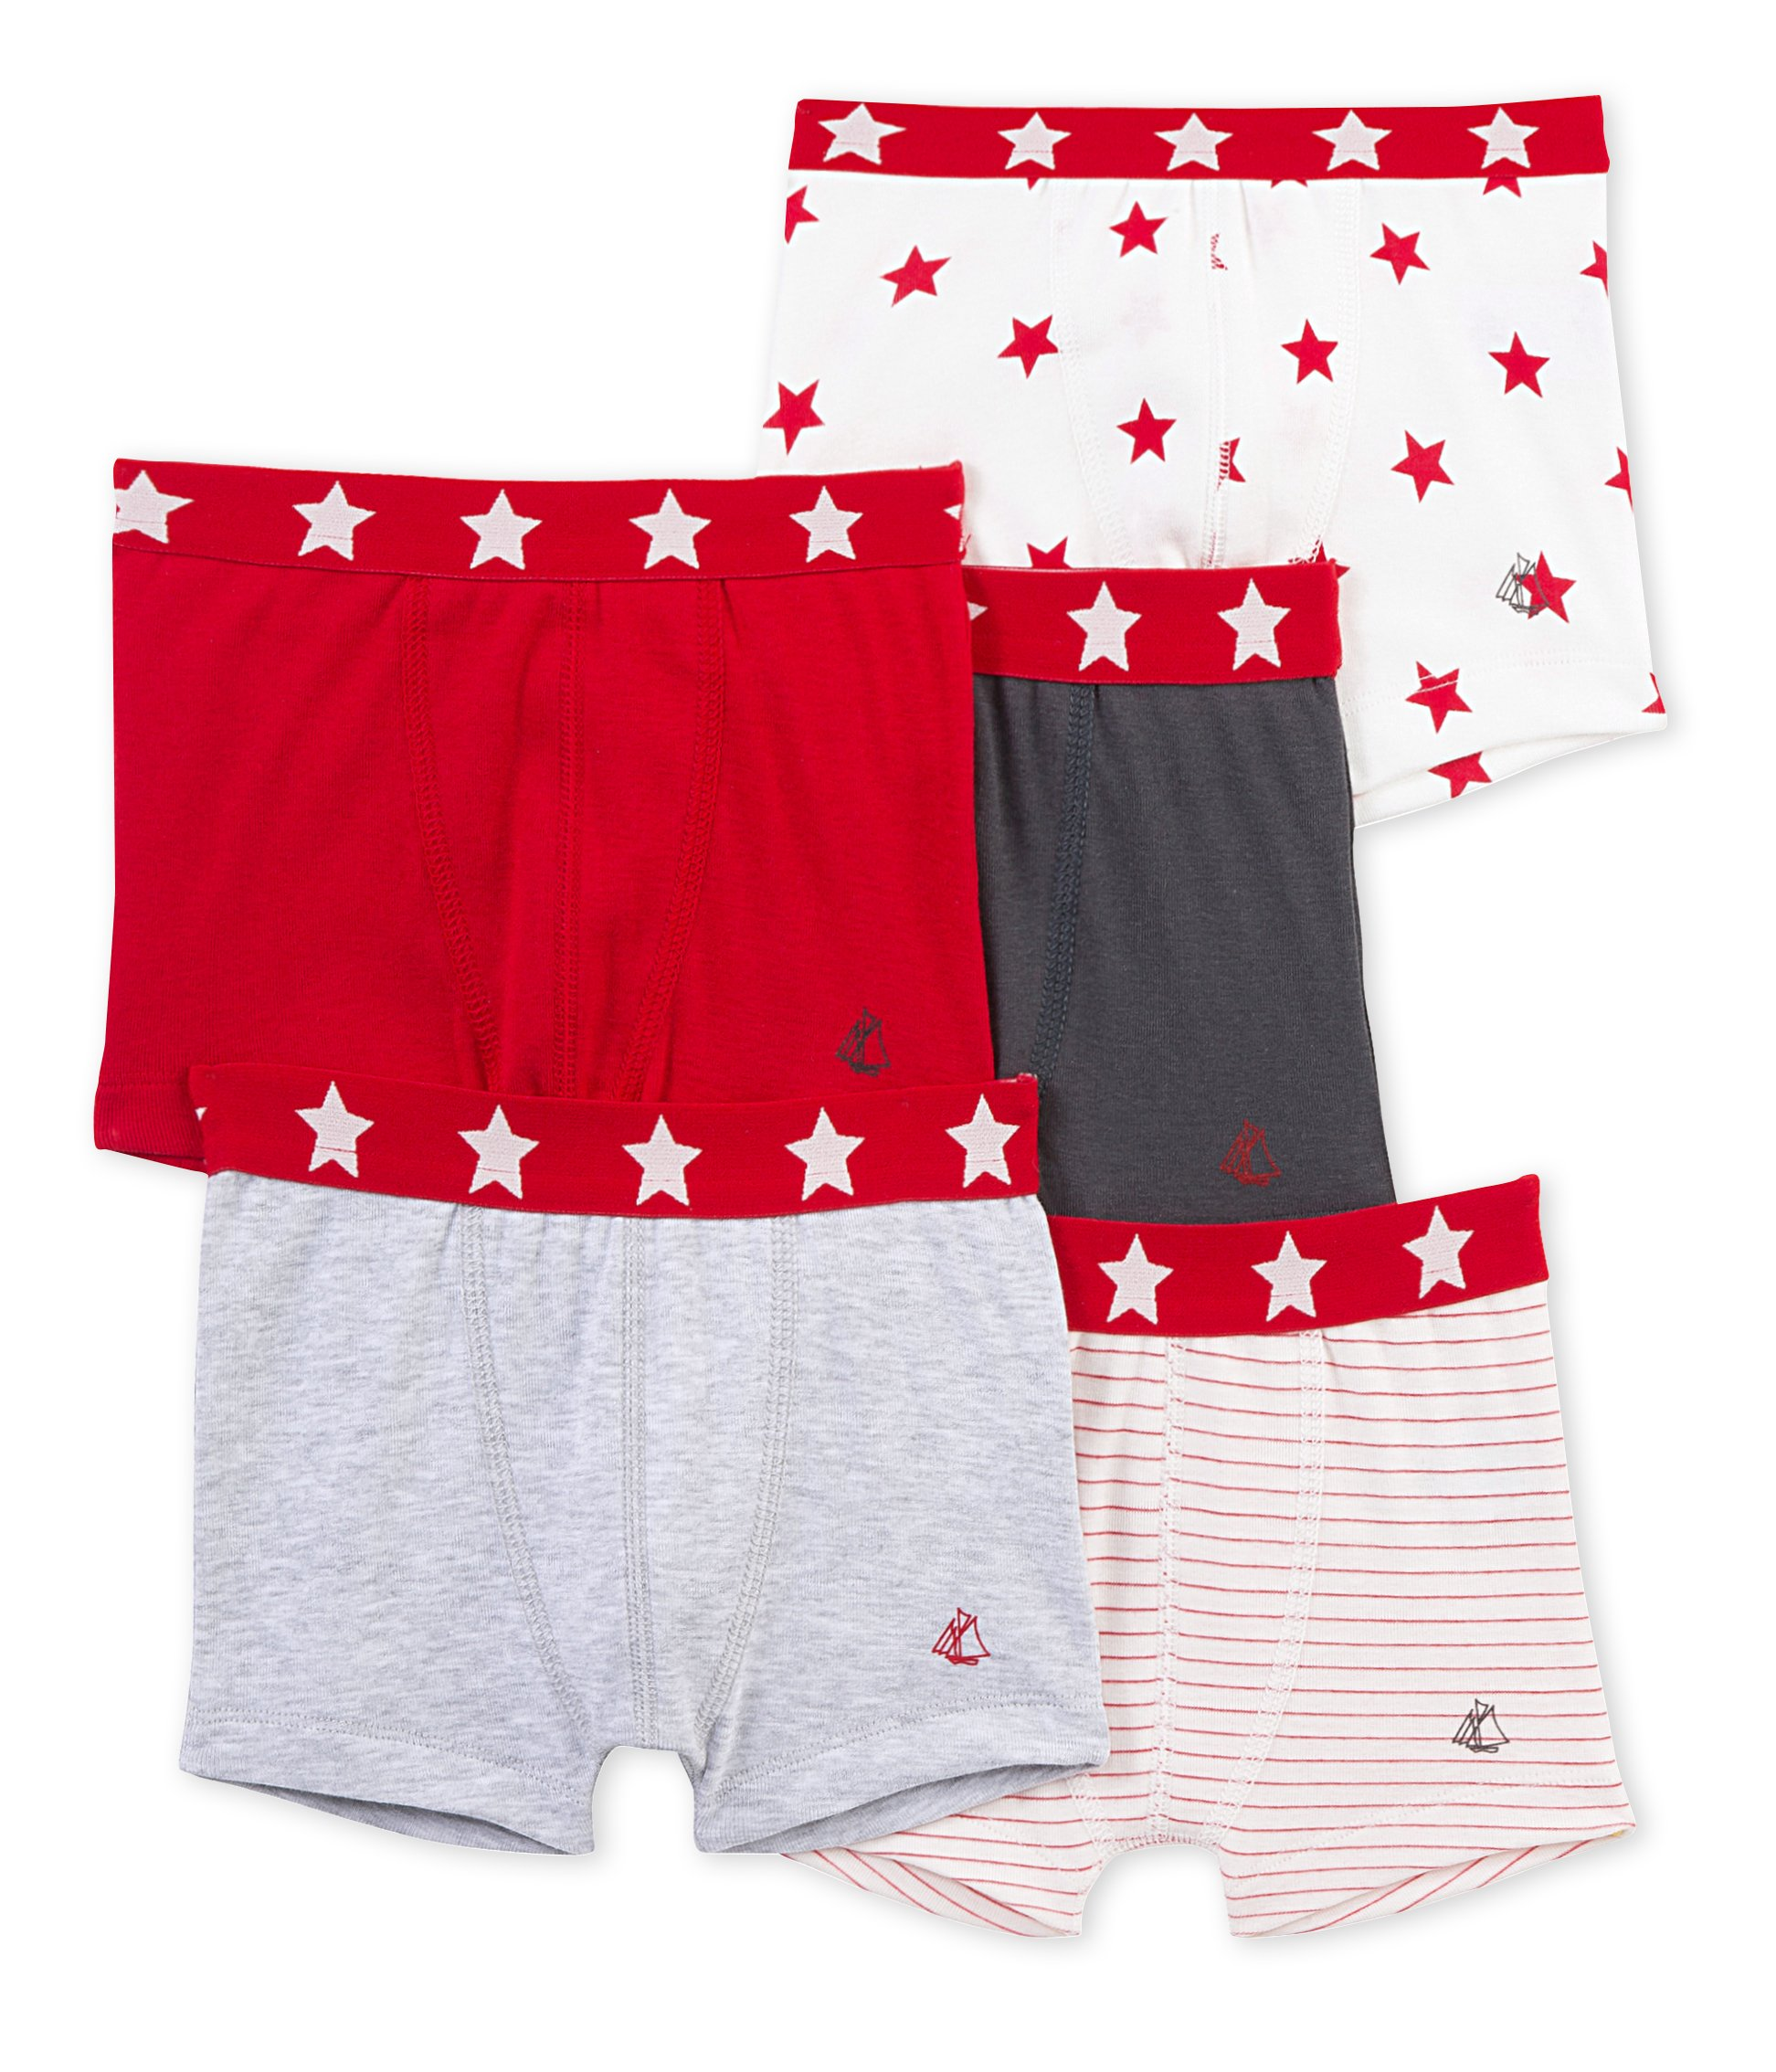 Petit Bateau Boys' 5 Pack Printed and Solid Boxers with Star Waistband, Multi-Colored, 3 Years